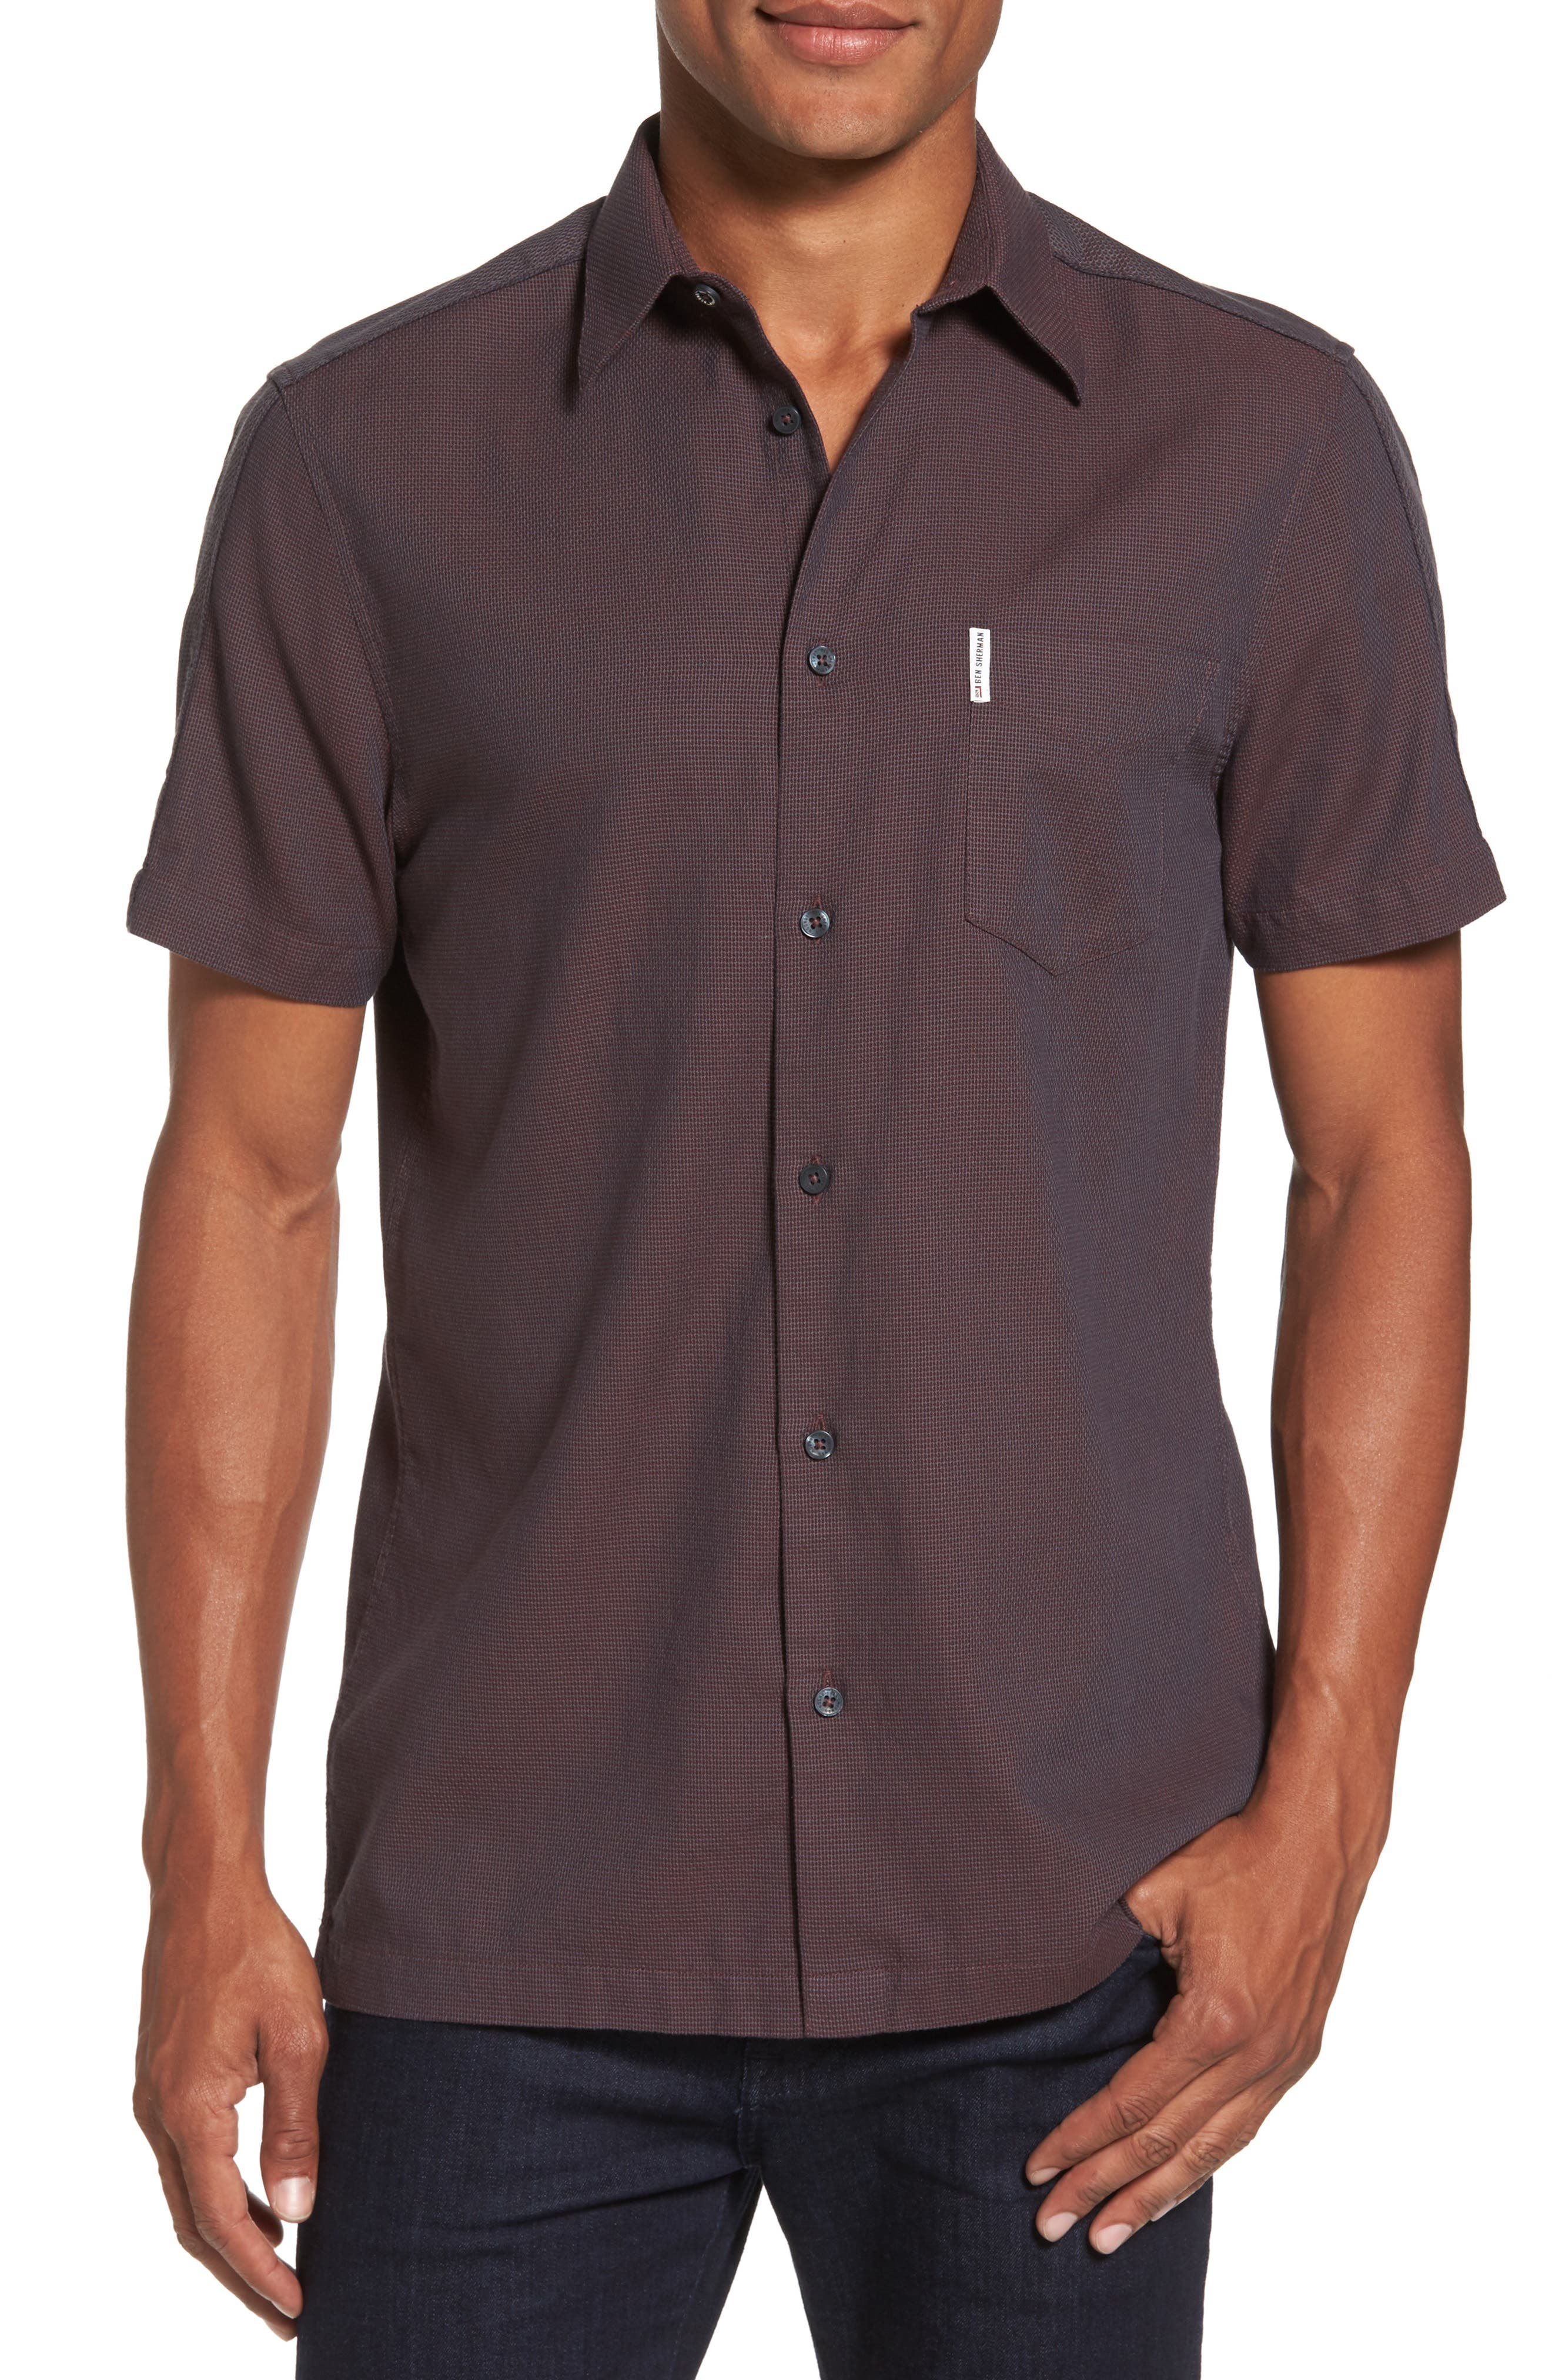 Main Image - Ben Sherman Dobby Short Sleeve Shirt